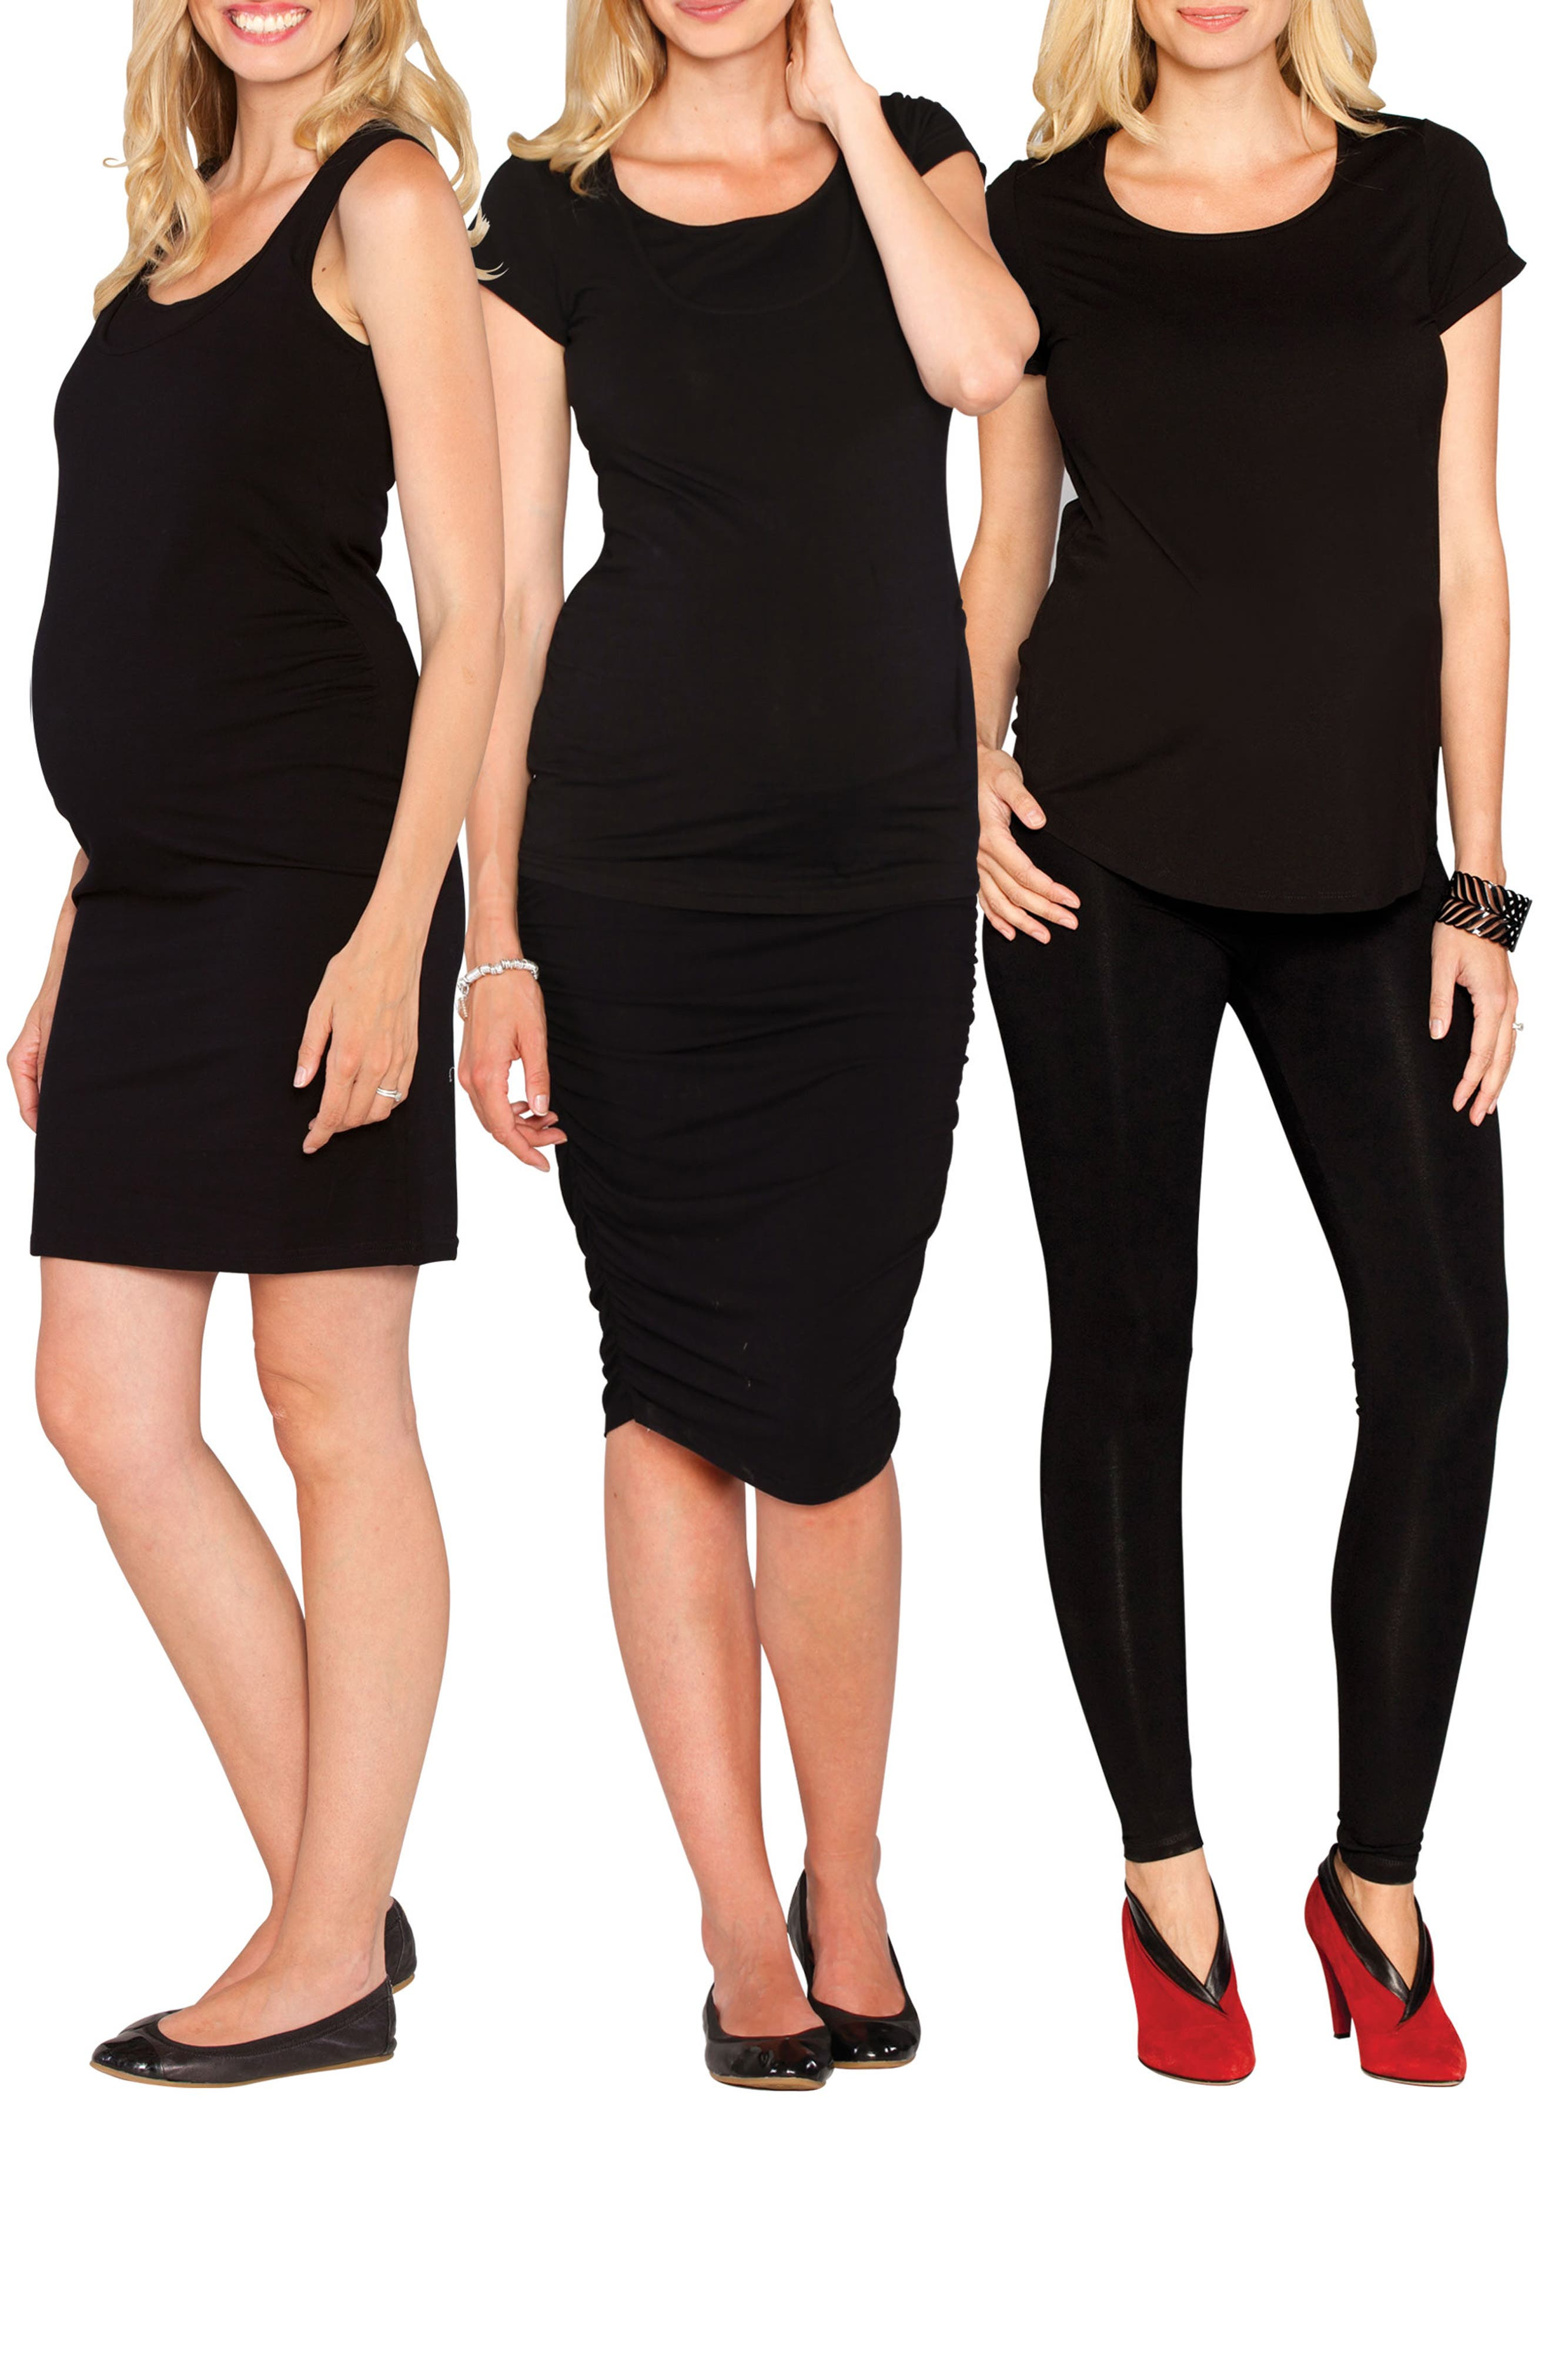 Alternate Image 1 Selected - Angel Maternity The Bumper Essential 4-Piece Maternity Starter Kit